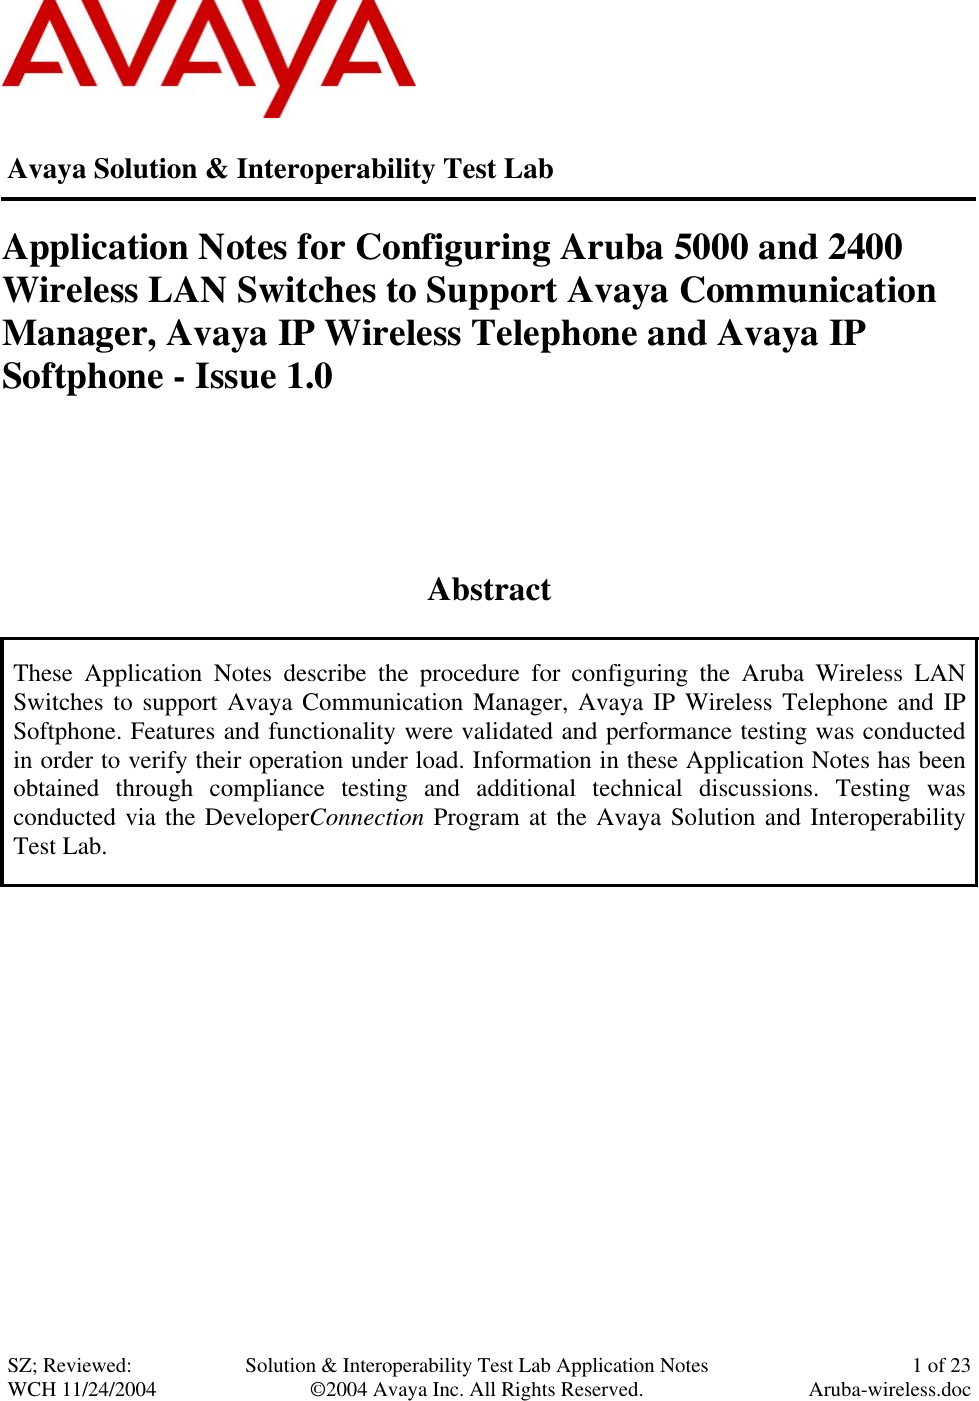 Avaya 4600 Series Ip Telephones Application Note Notes For